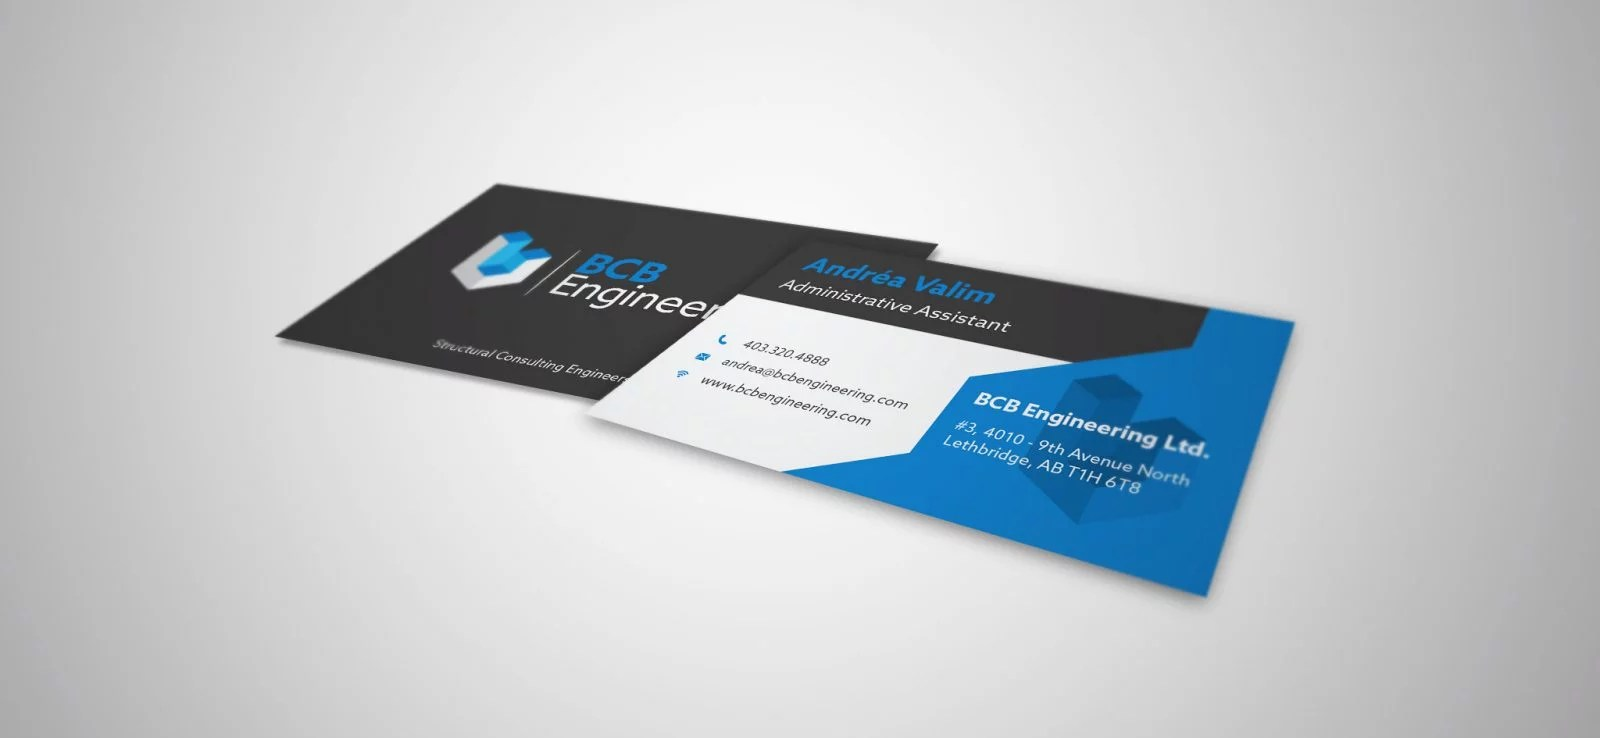 BCB Engineering - Business Card Design